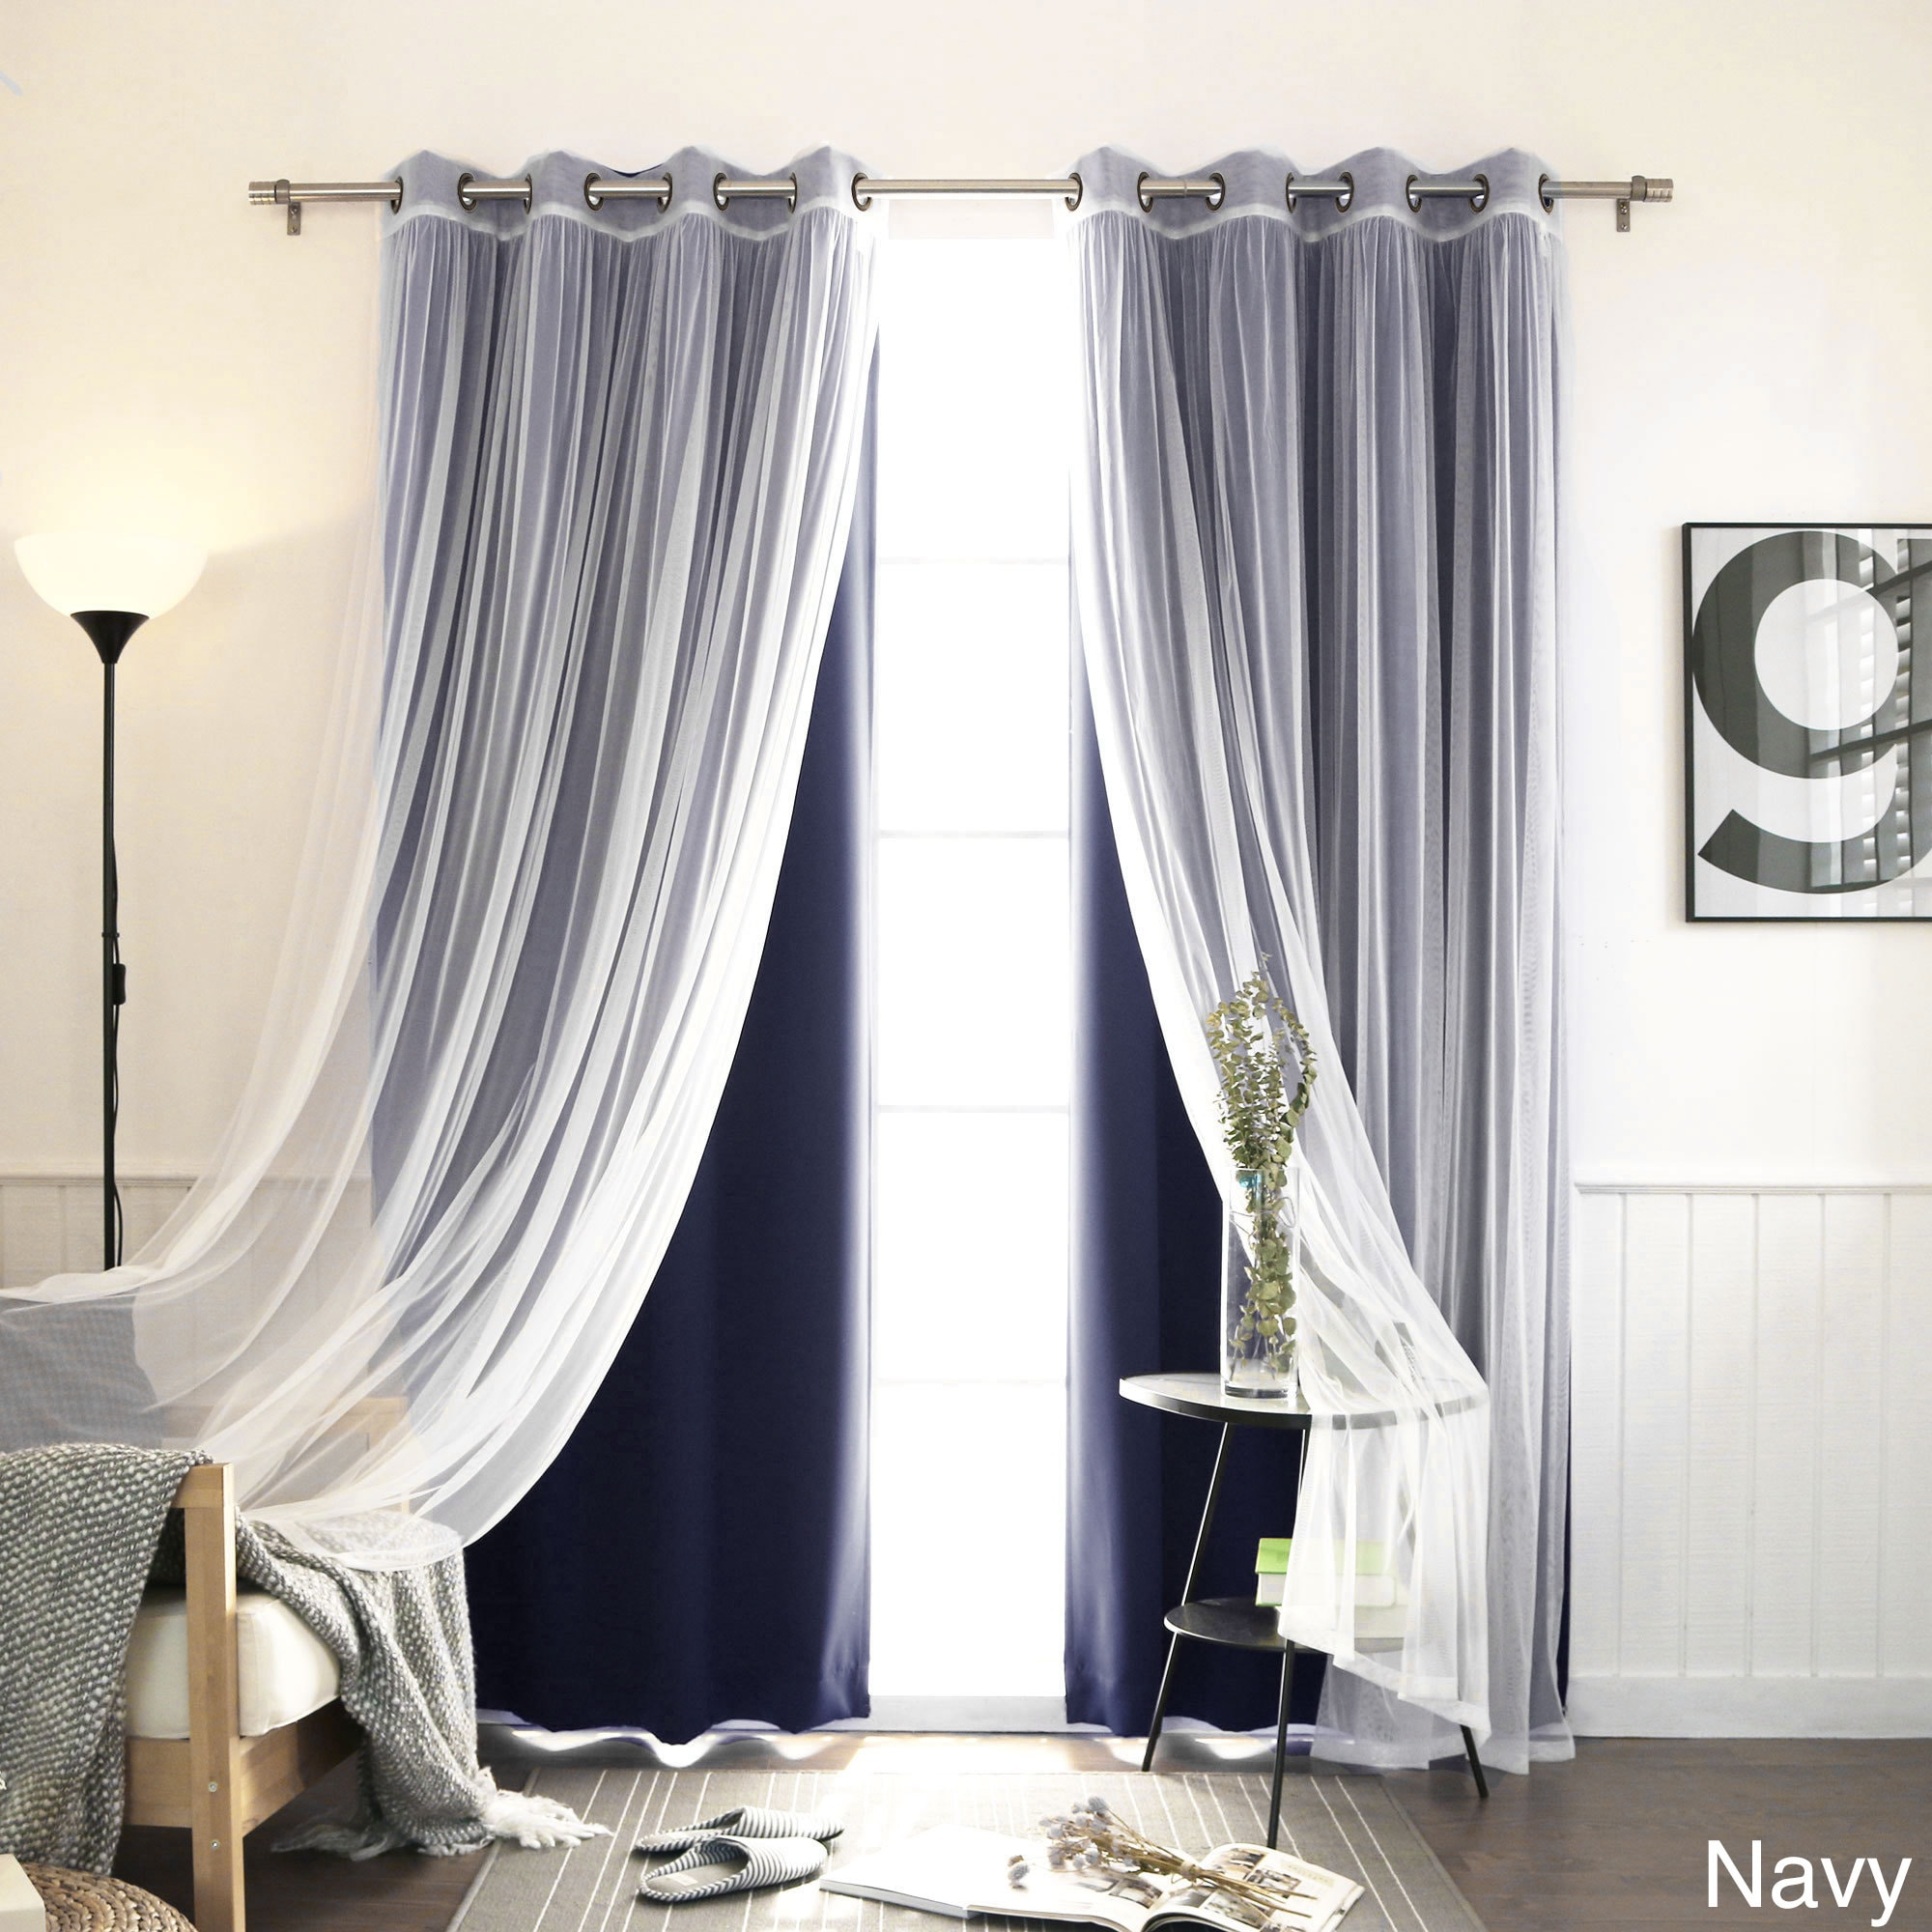 4-piece Sheer Blackout Grommet Top Curtain Panels (Navy, ...